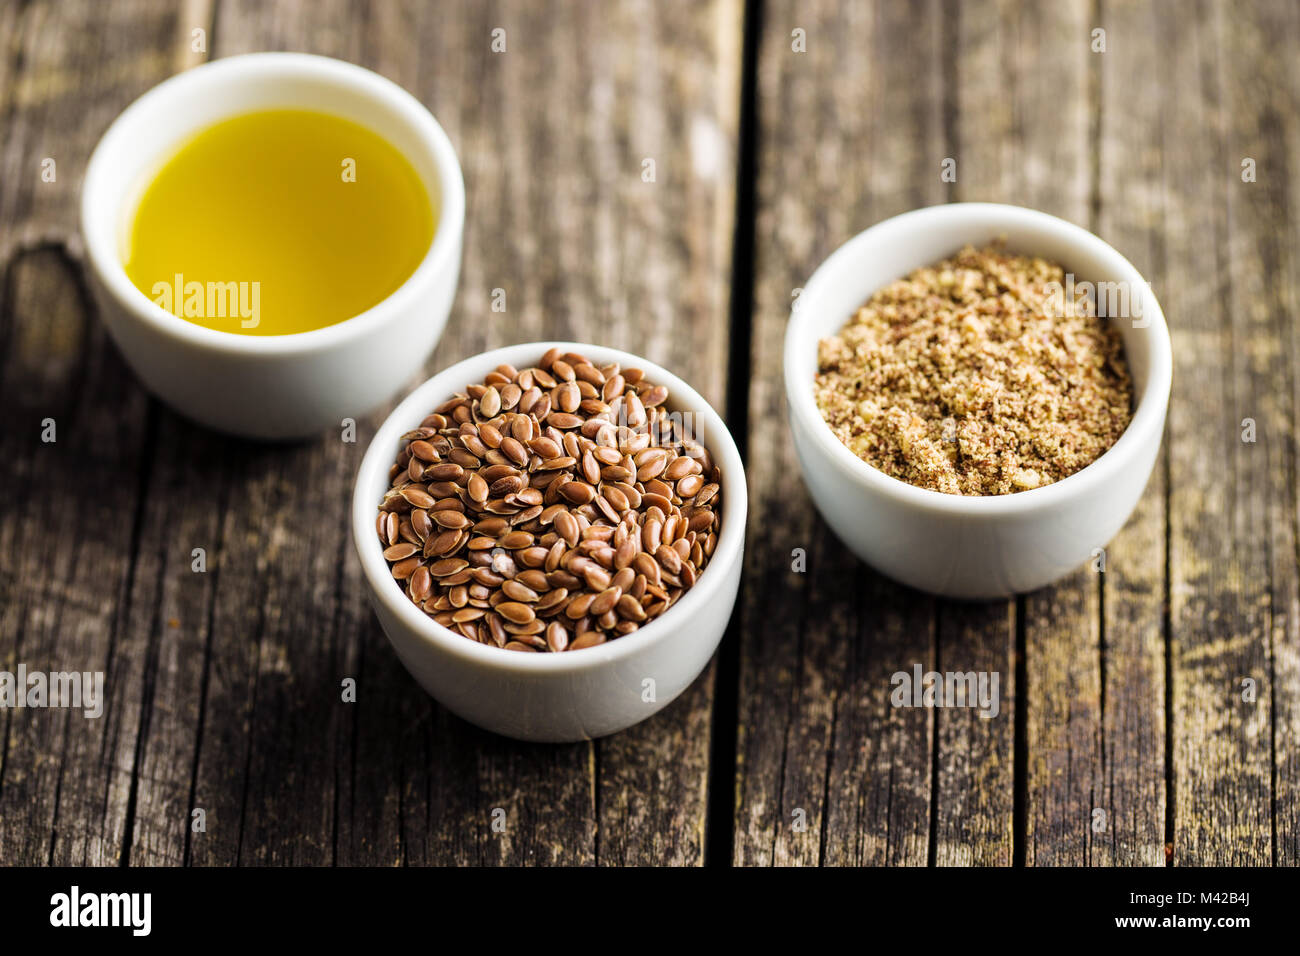 The healthy brown linseeds, minced linseed and oil. - Stock Image